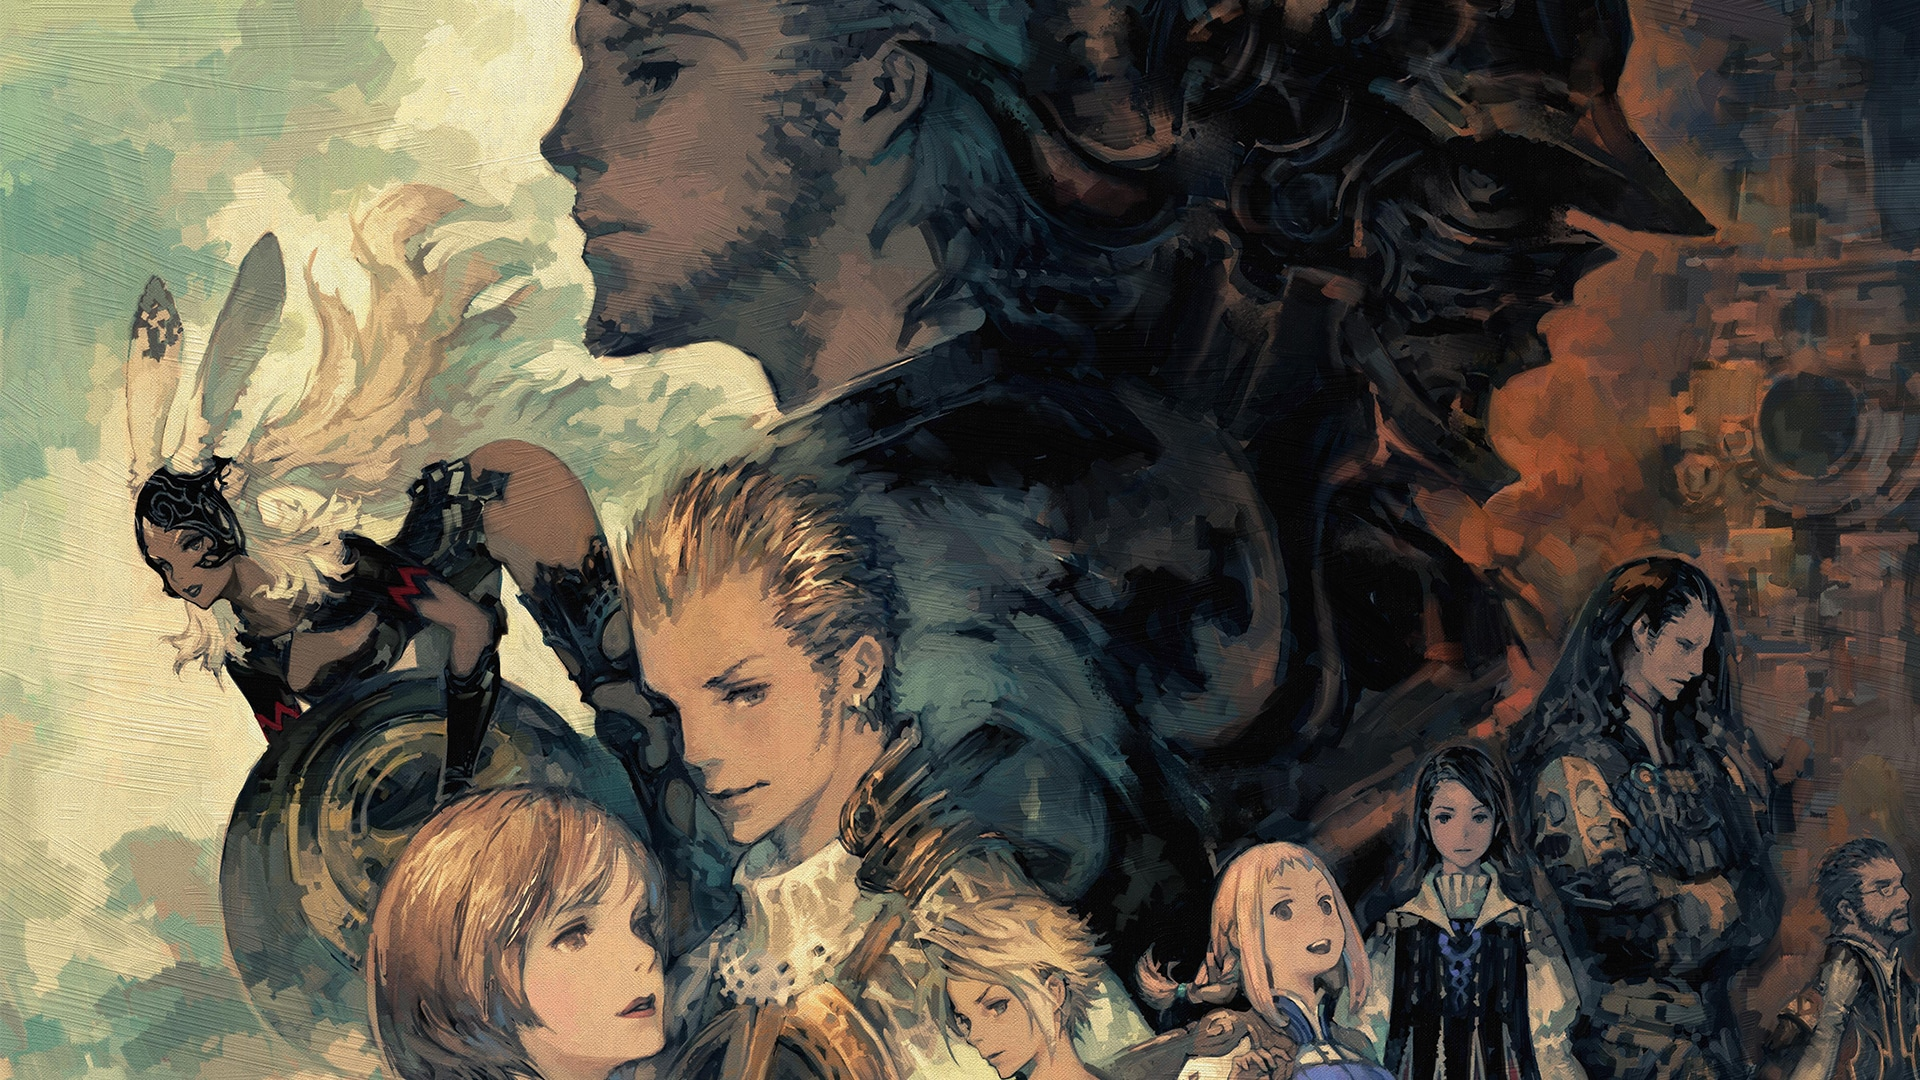 VIRTUOS CO-DEVELOPING FINAL FANTASY TITLES WILL DEBUT ON NINTENDO SWITCH AND XBOX ONE IN 2019